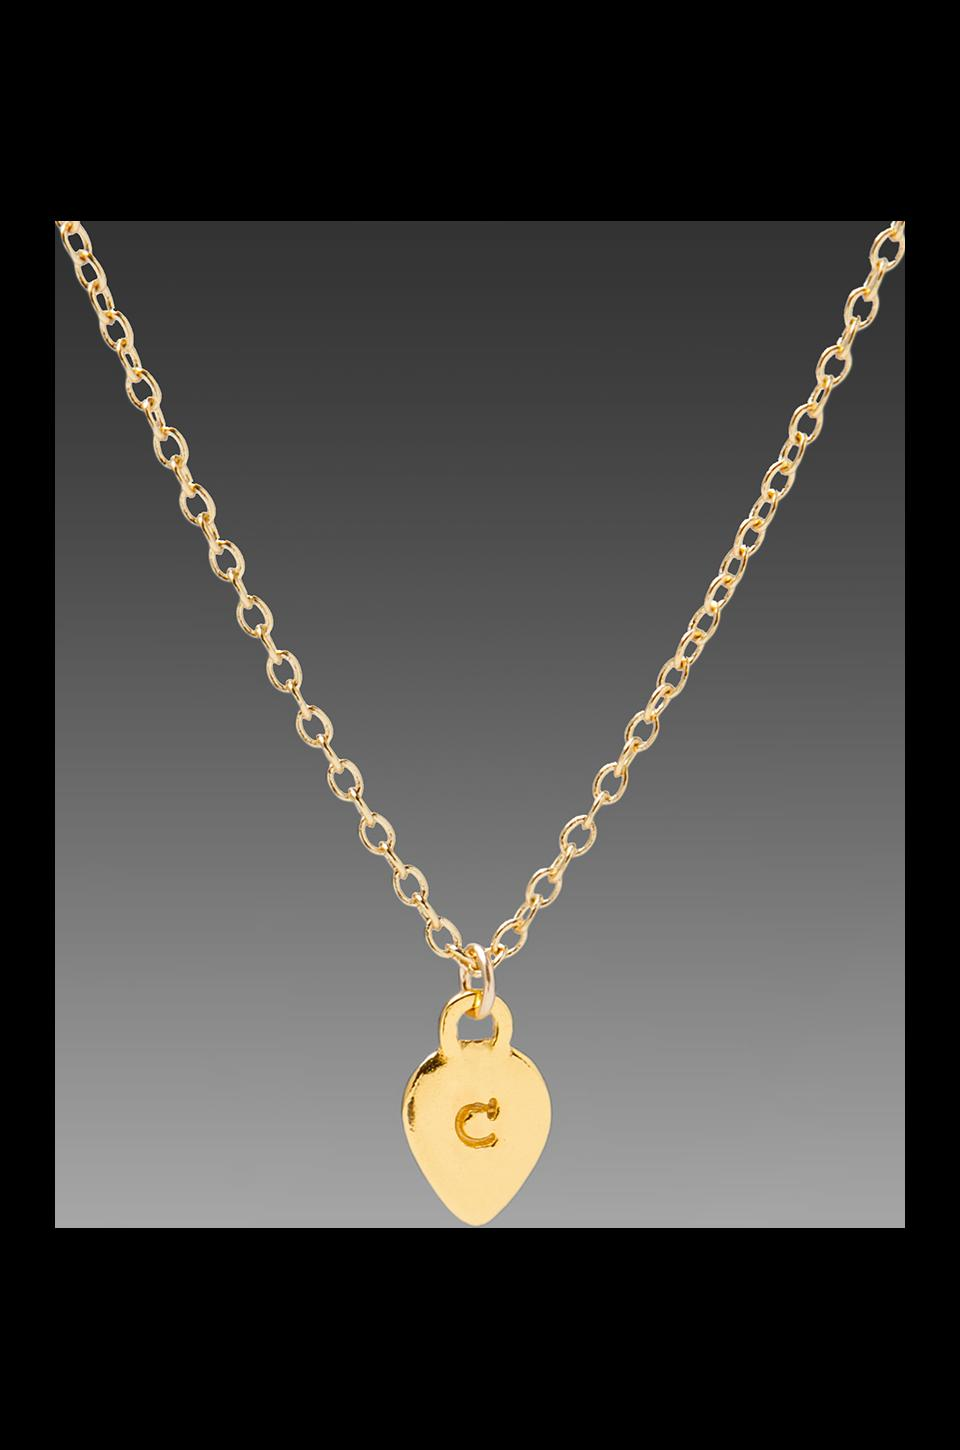 gorjana Alphabet Charm Necklace in 'C'